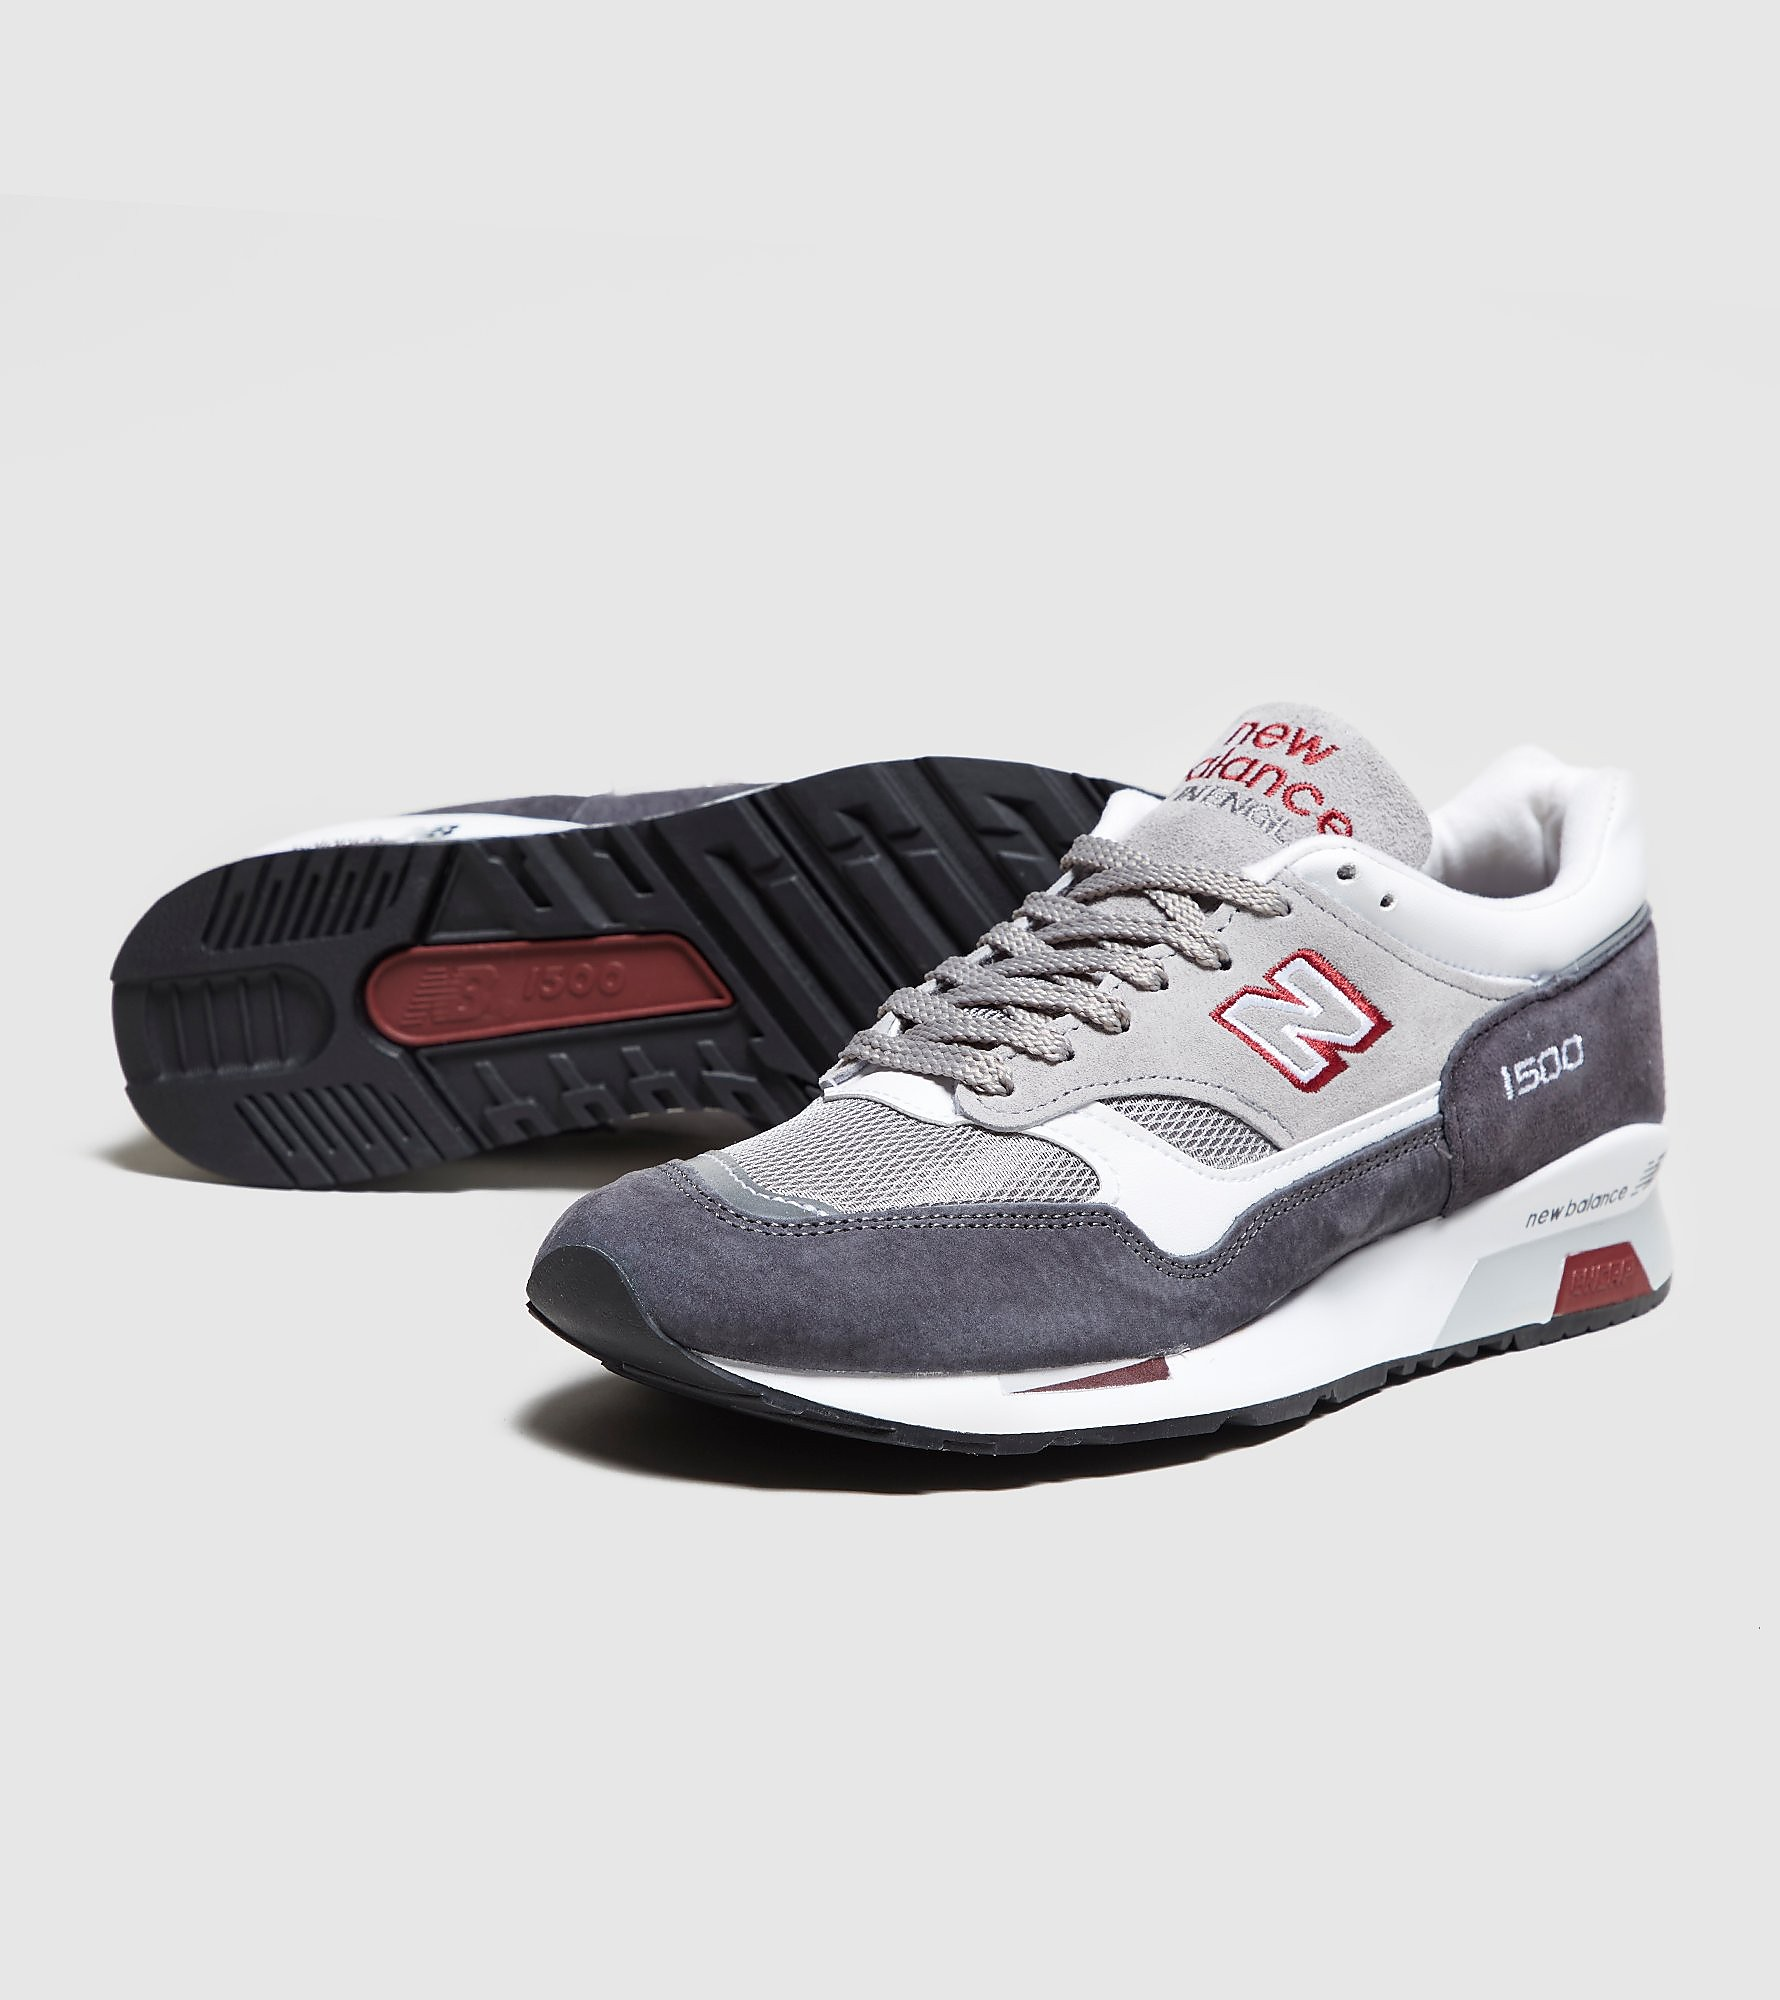 New Balance M1500GRW 'Made in UK'